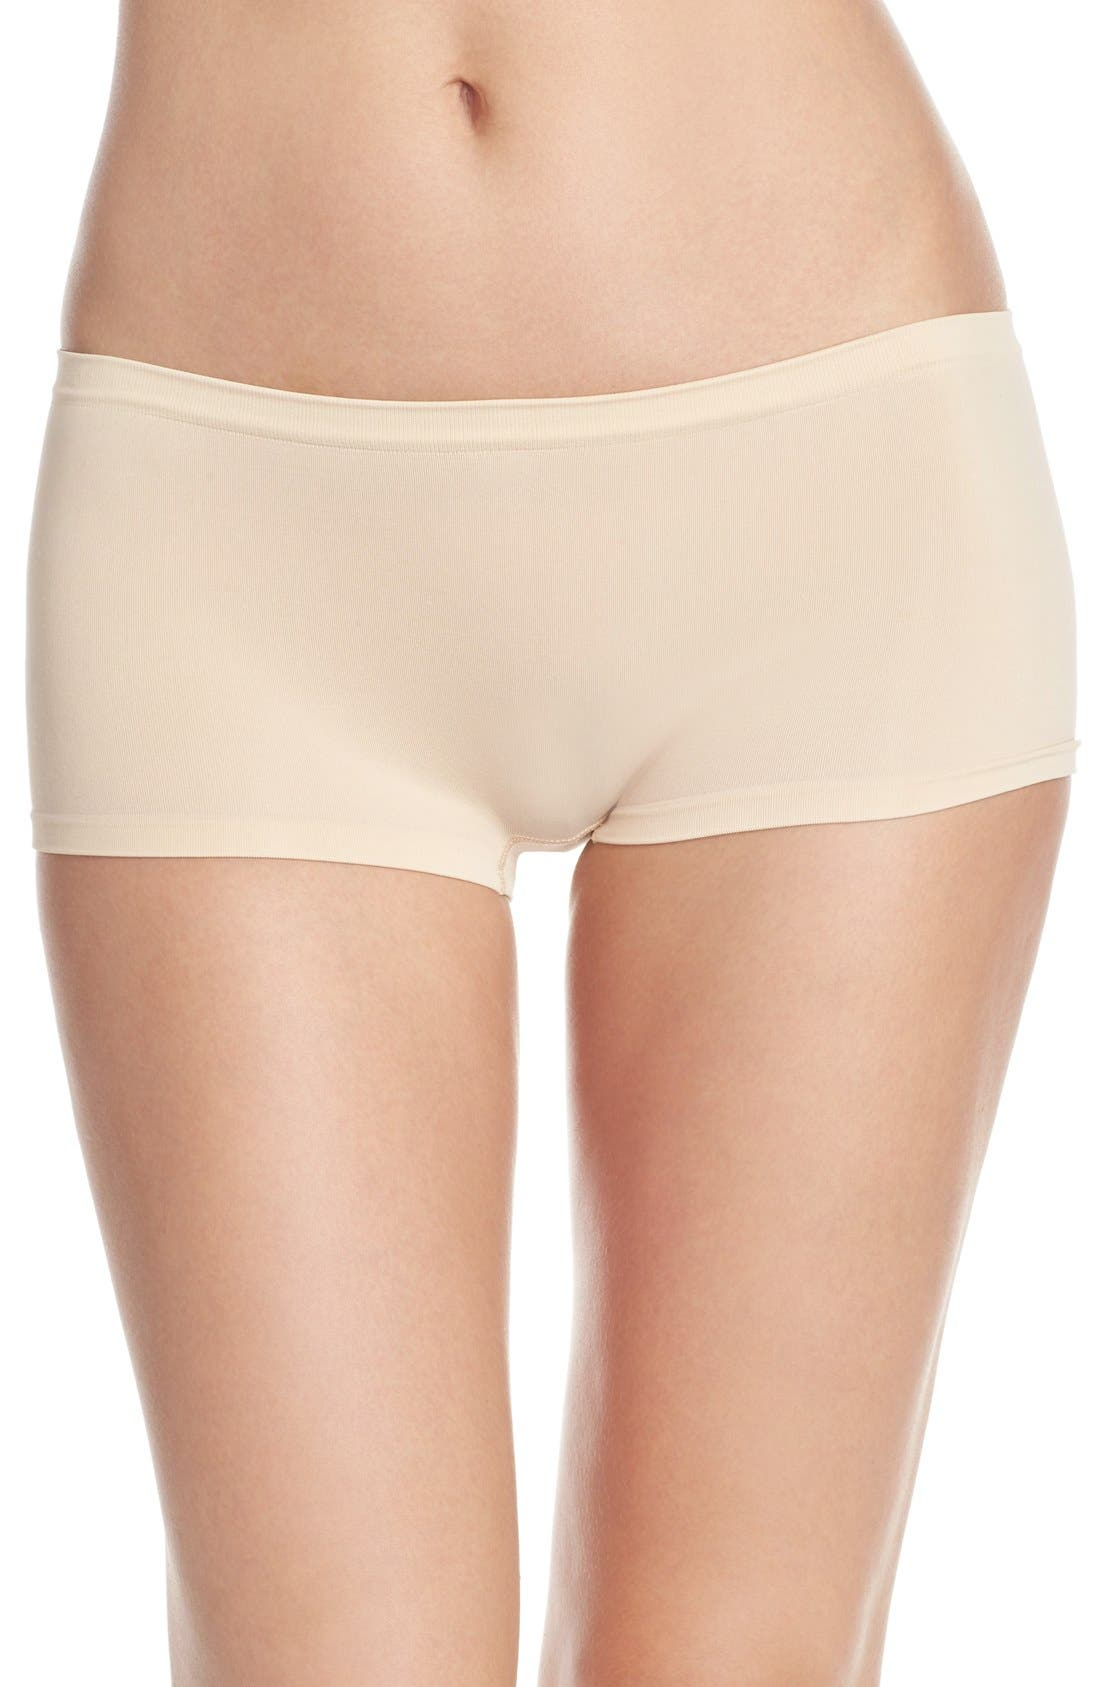 Nordstrom Lingerie Seamless Boyshorts (4 for $34)